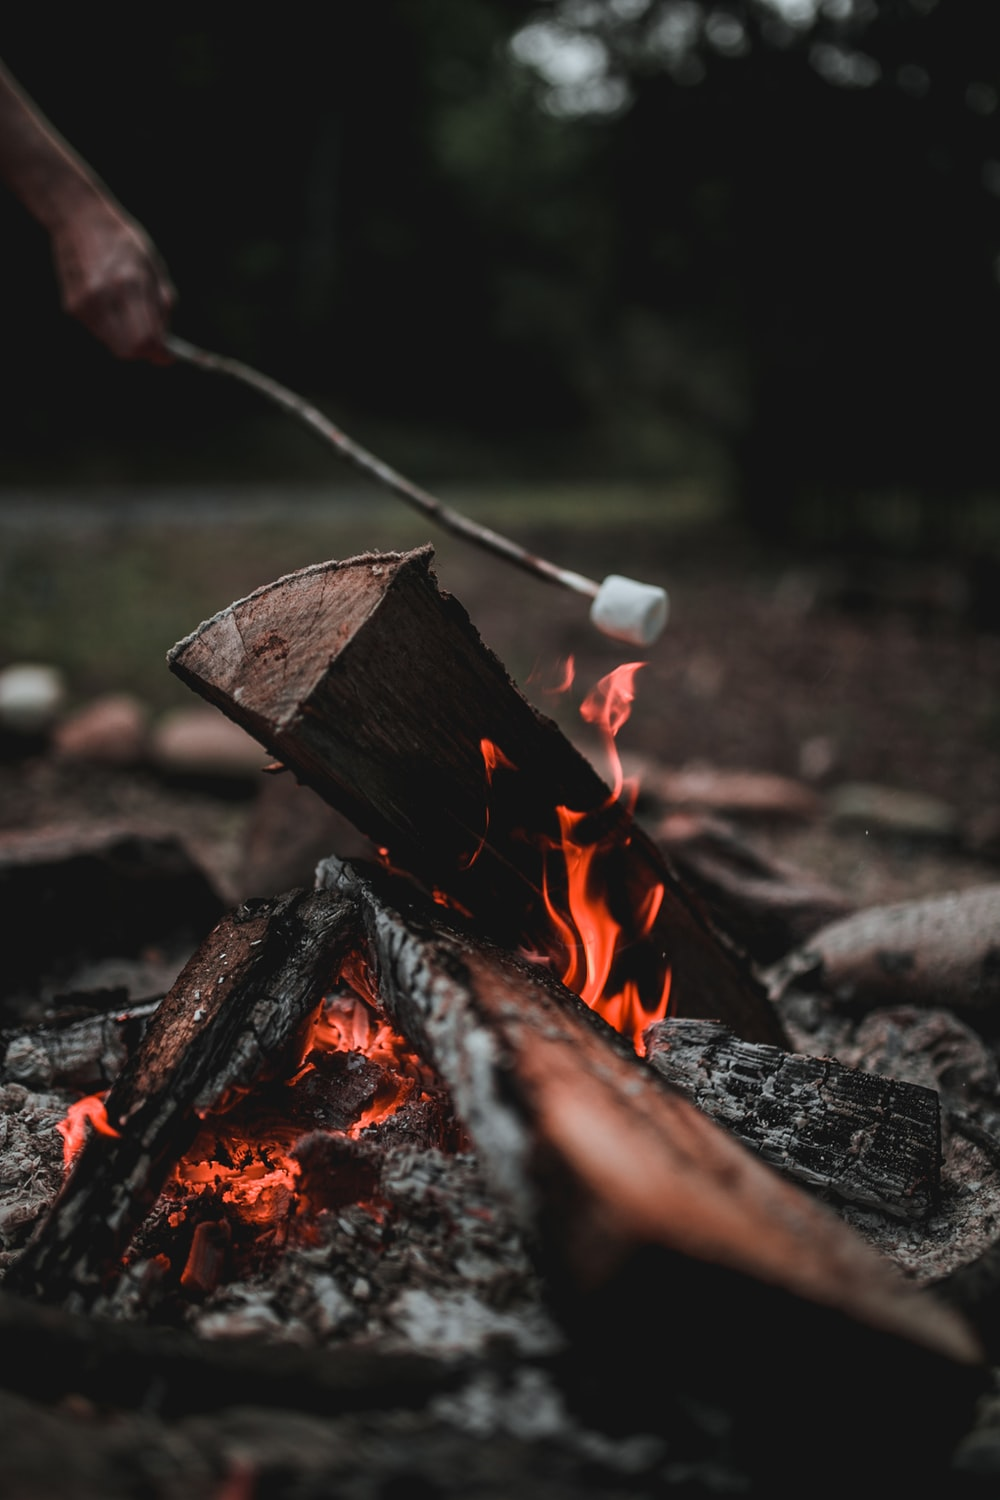 person putting marshmallow on firepit